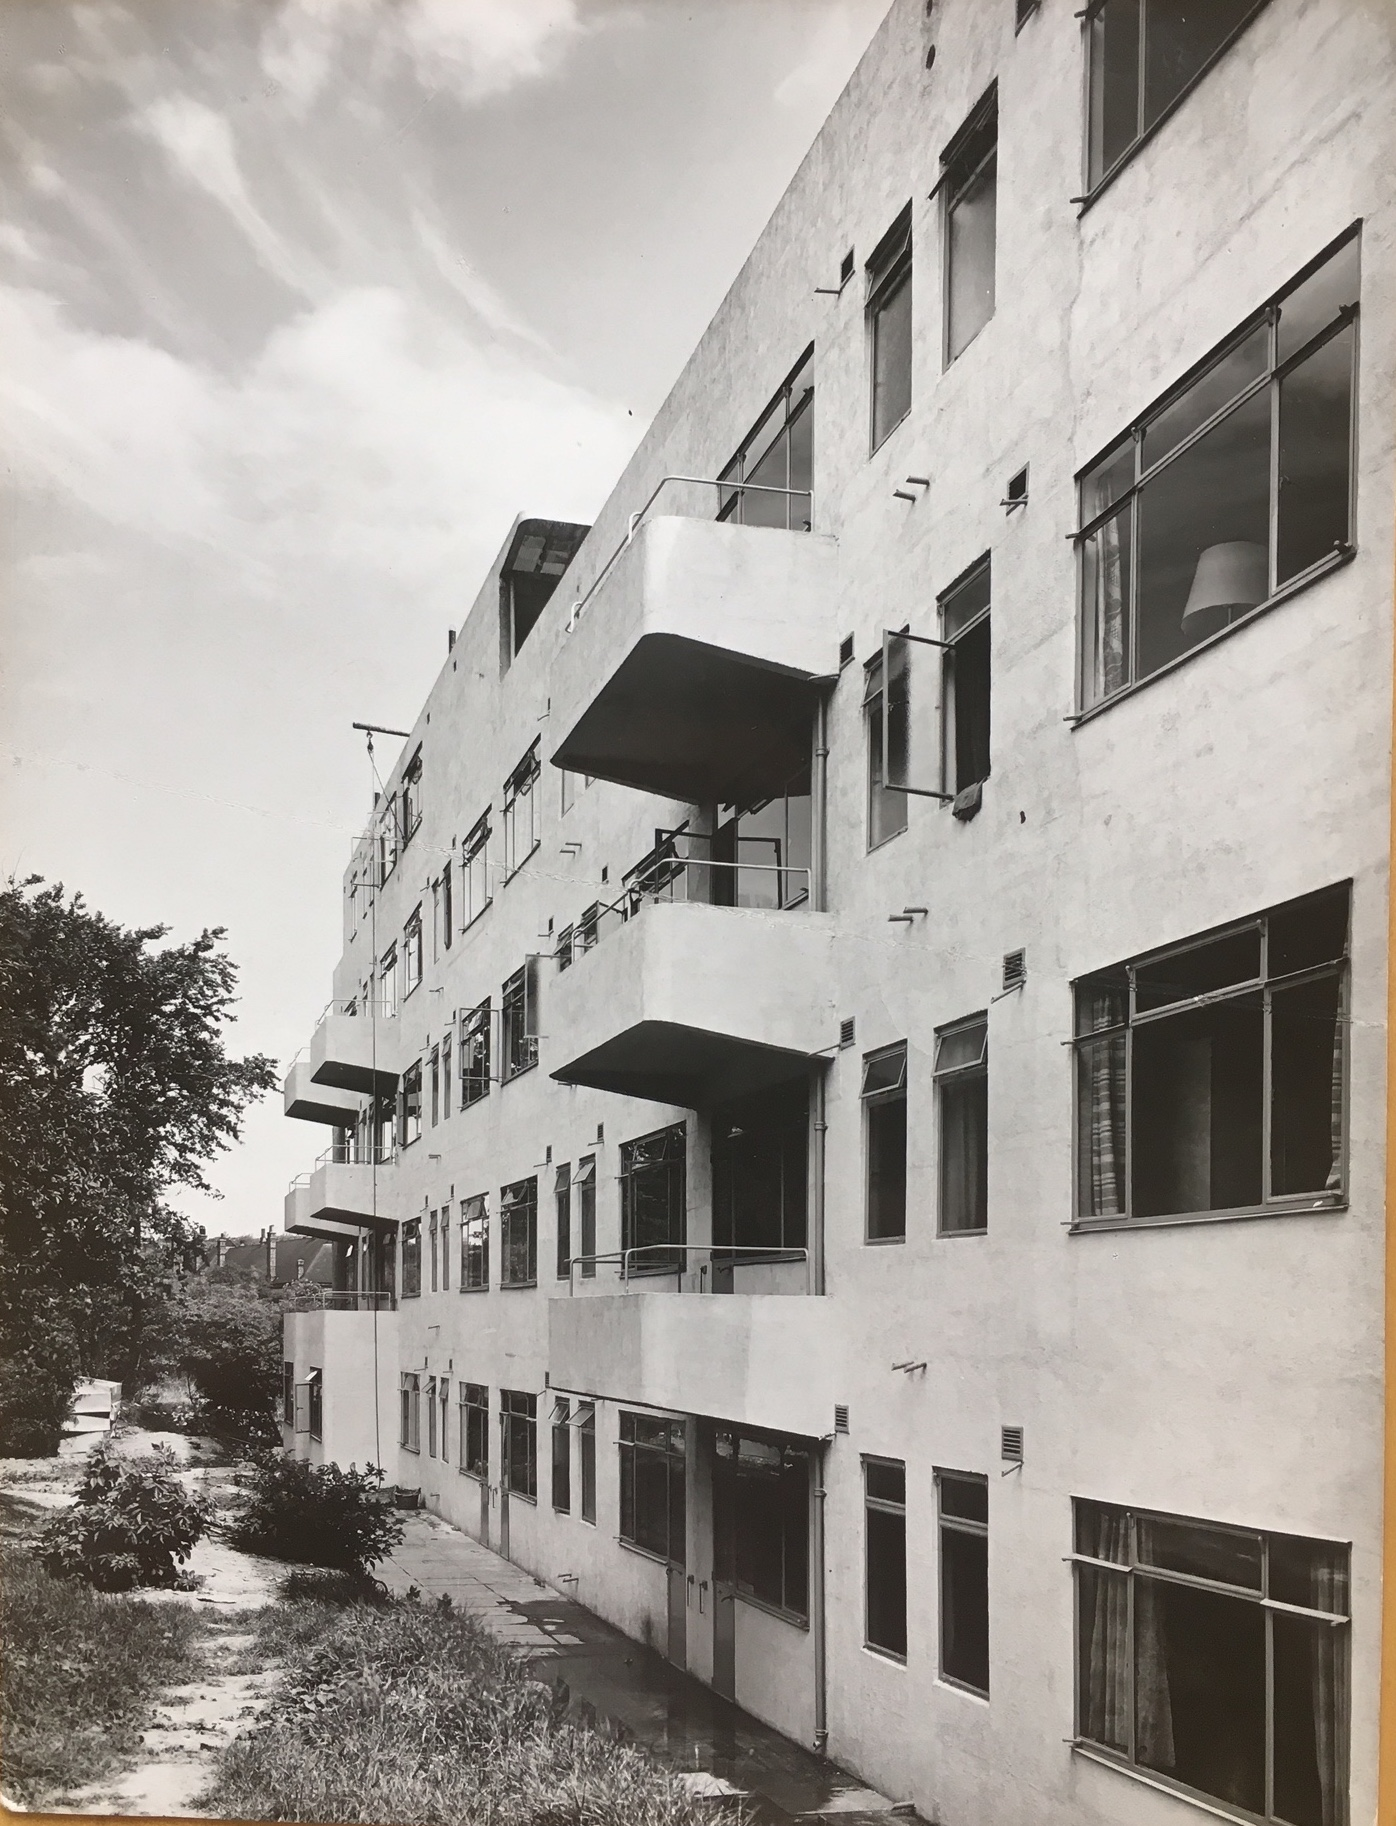 Cantilevered balconies line the rear side of the Lawn Road flats, pictured while under construction.